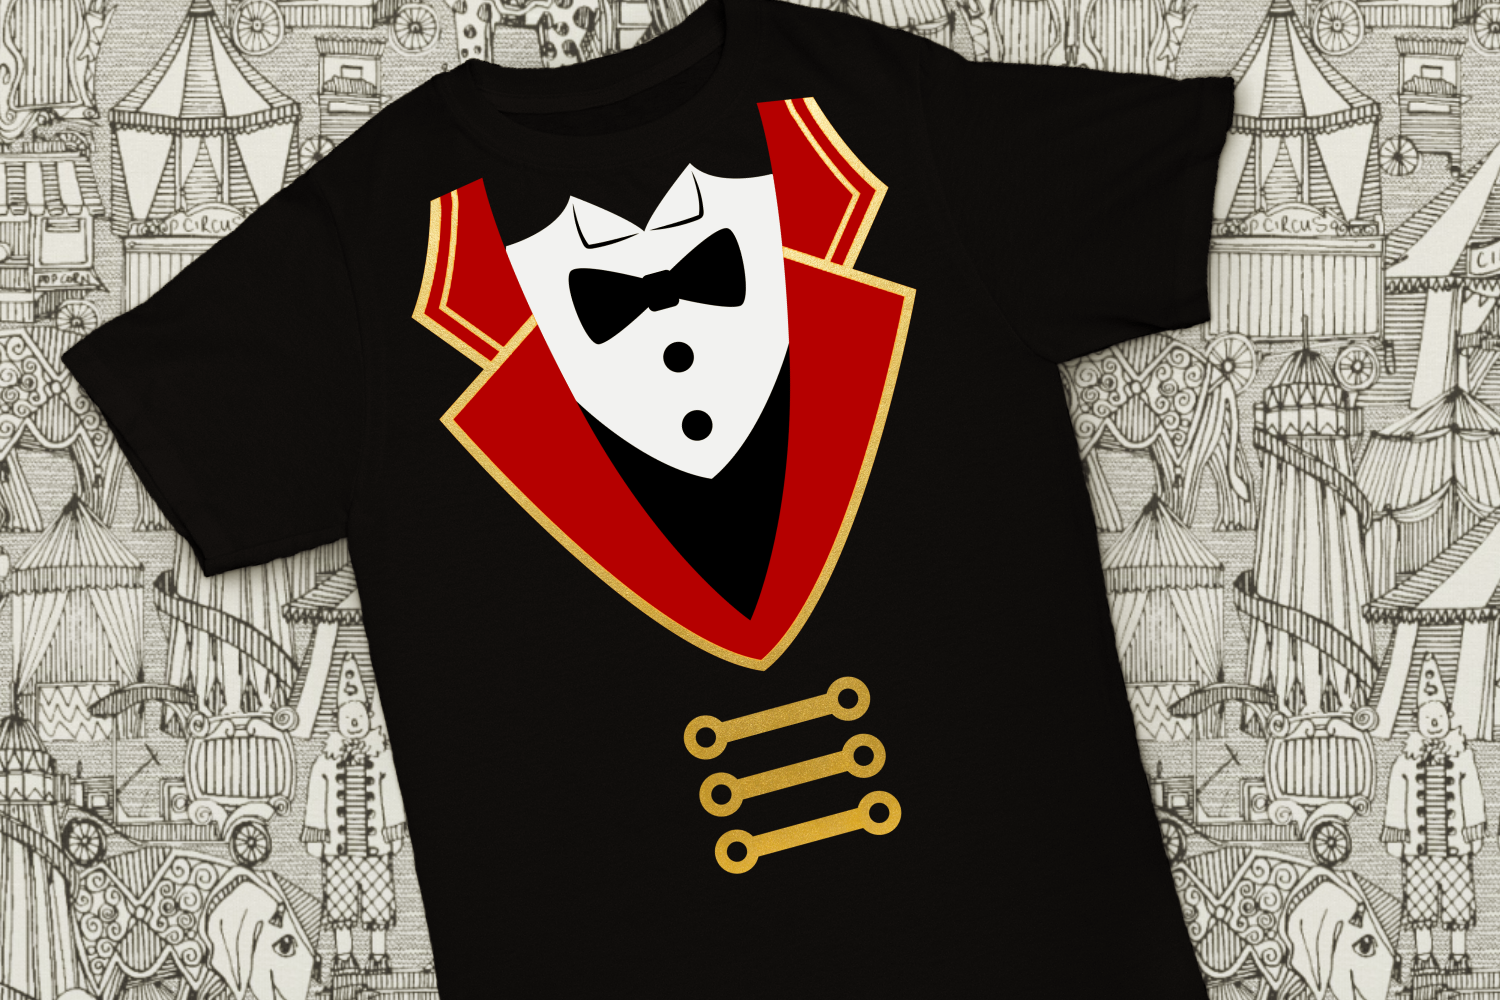 Circus Ringmaster Coat and Tuxedo SVG File Cutting Template example image 2